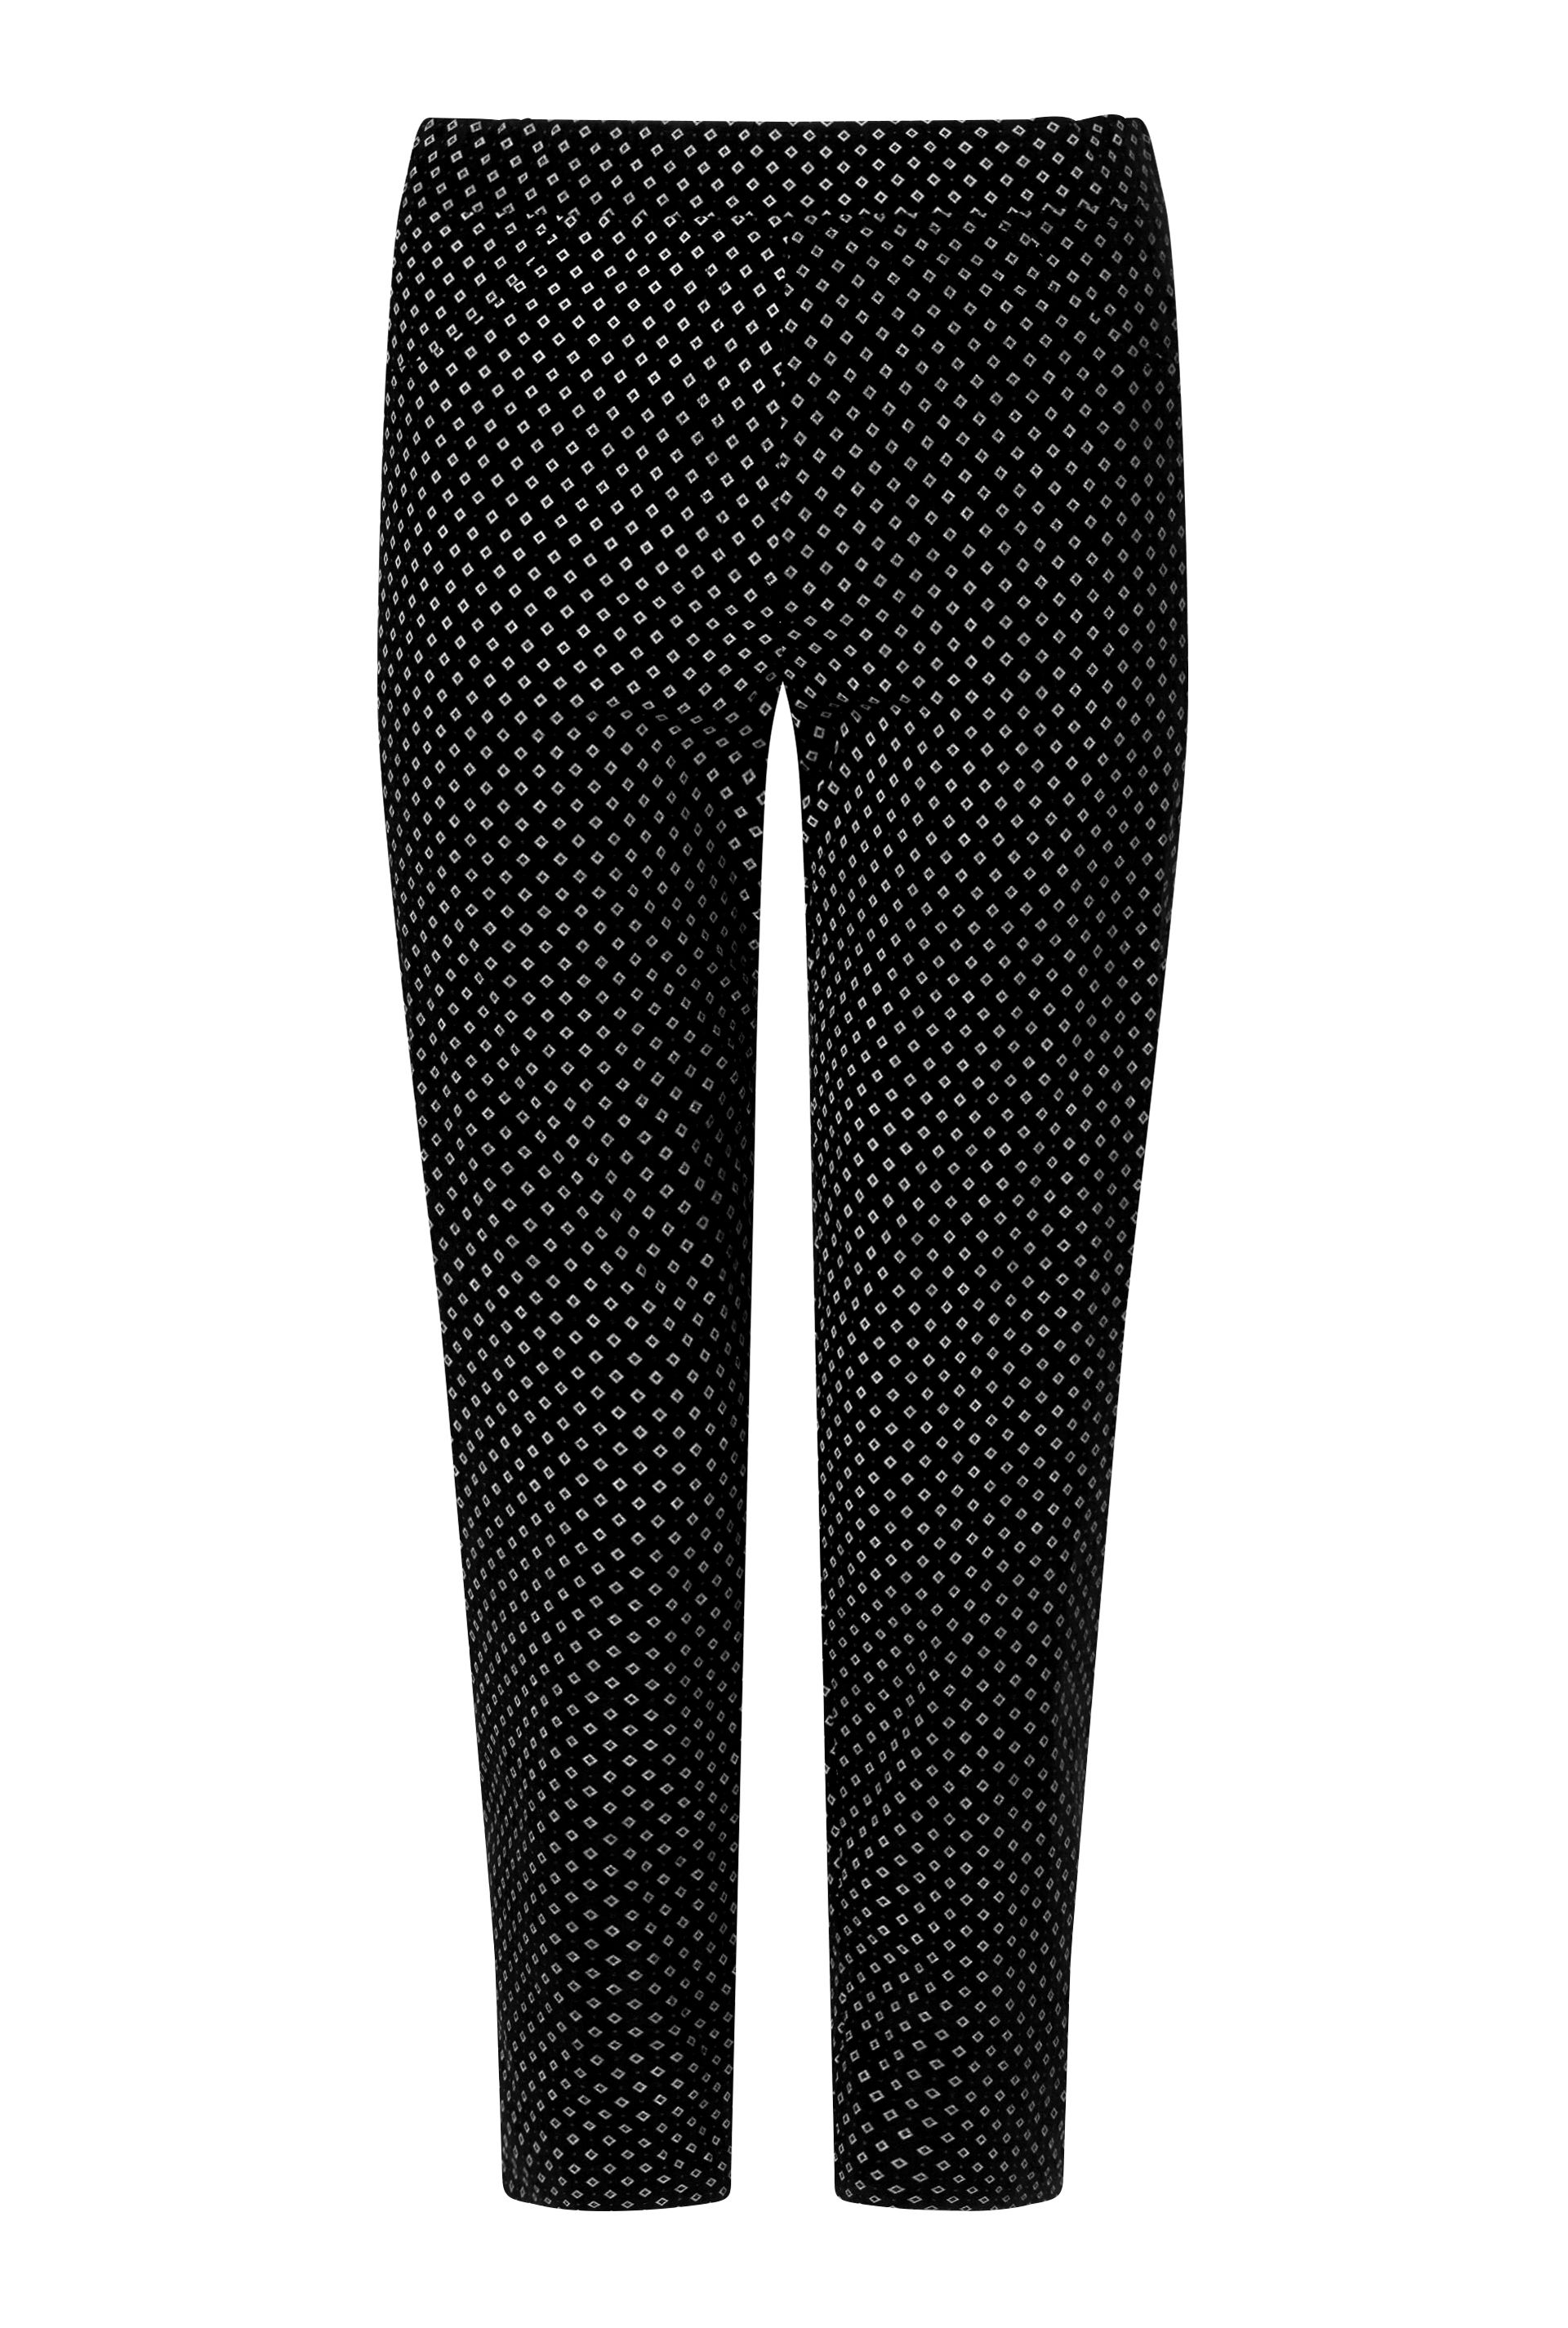 James Lakeland Cropped Patterened Trousers, Black